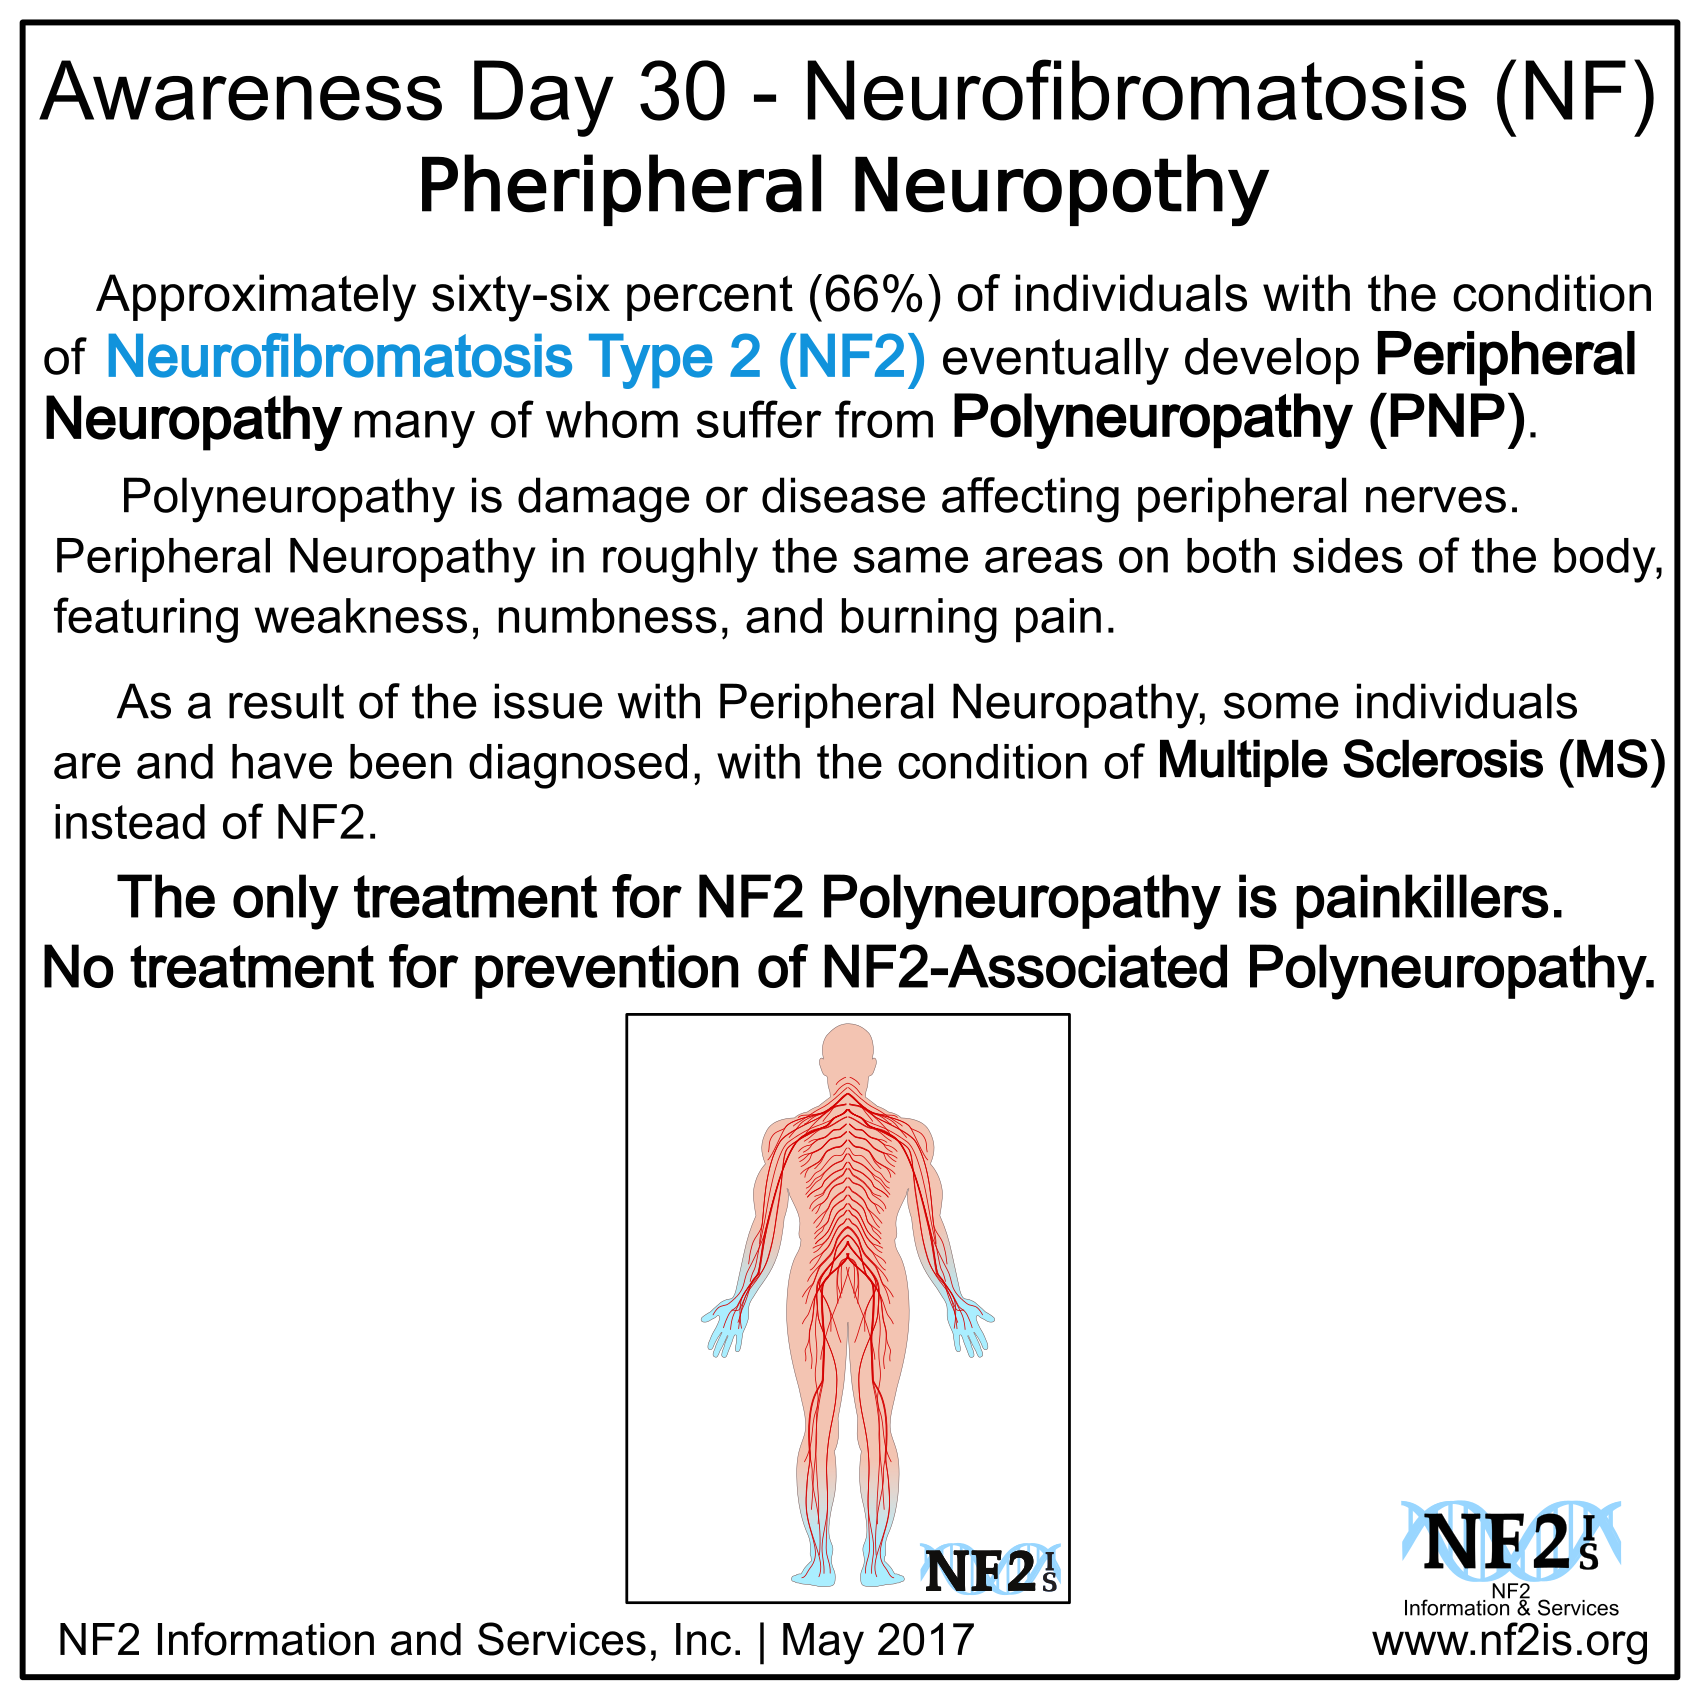 NF2, associated, Polyneuropathy, Peripheral Neuropathy, PNP